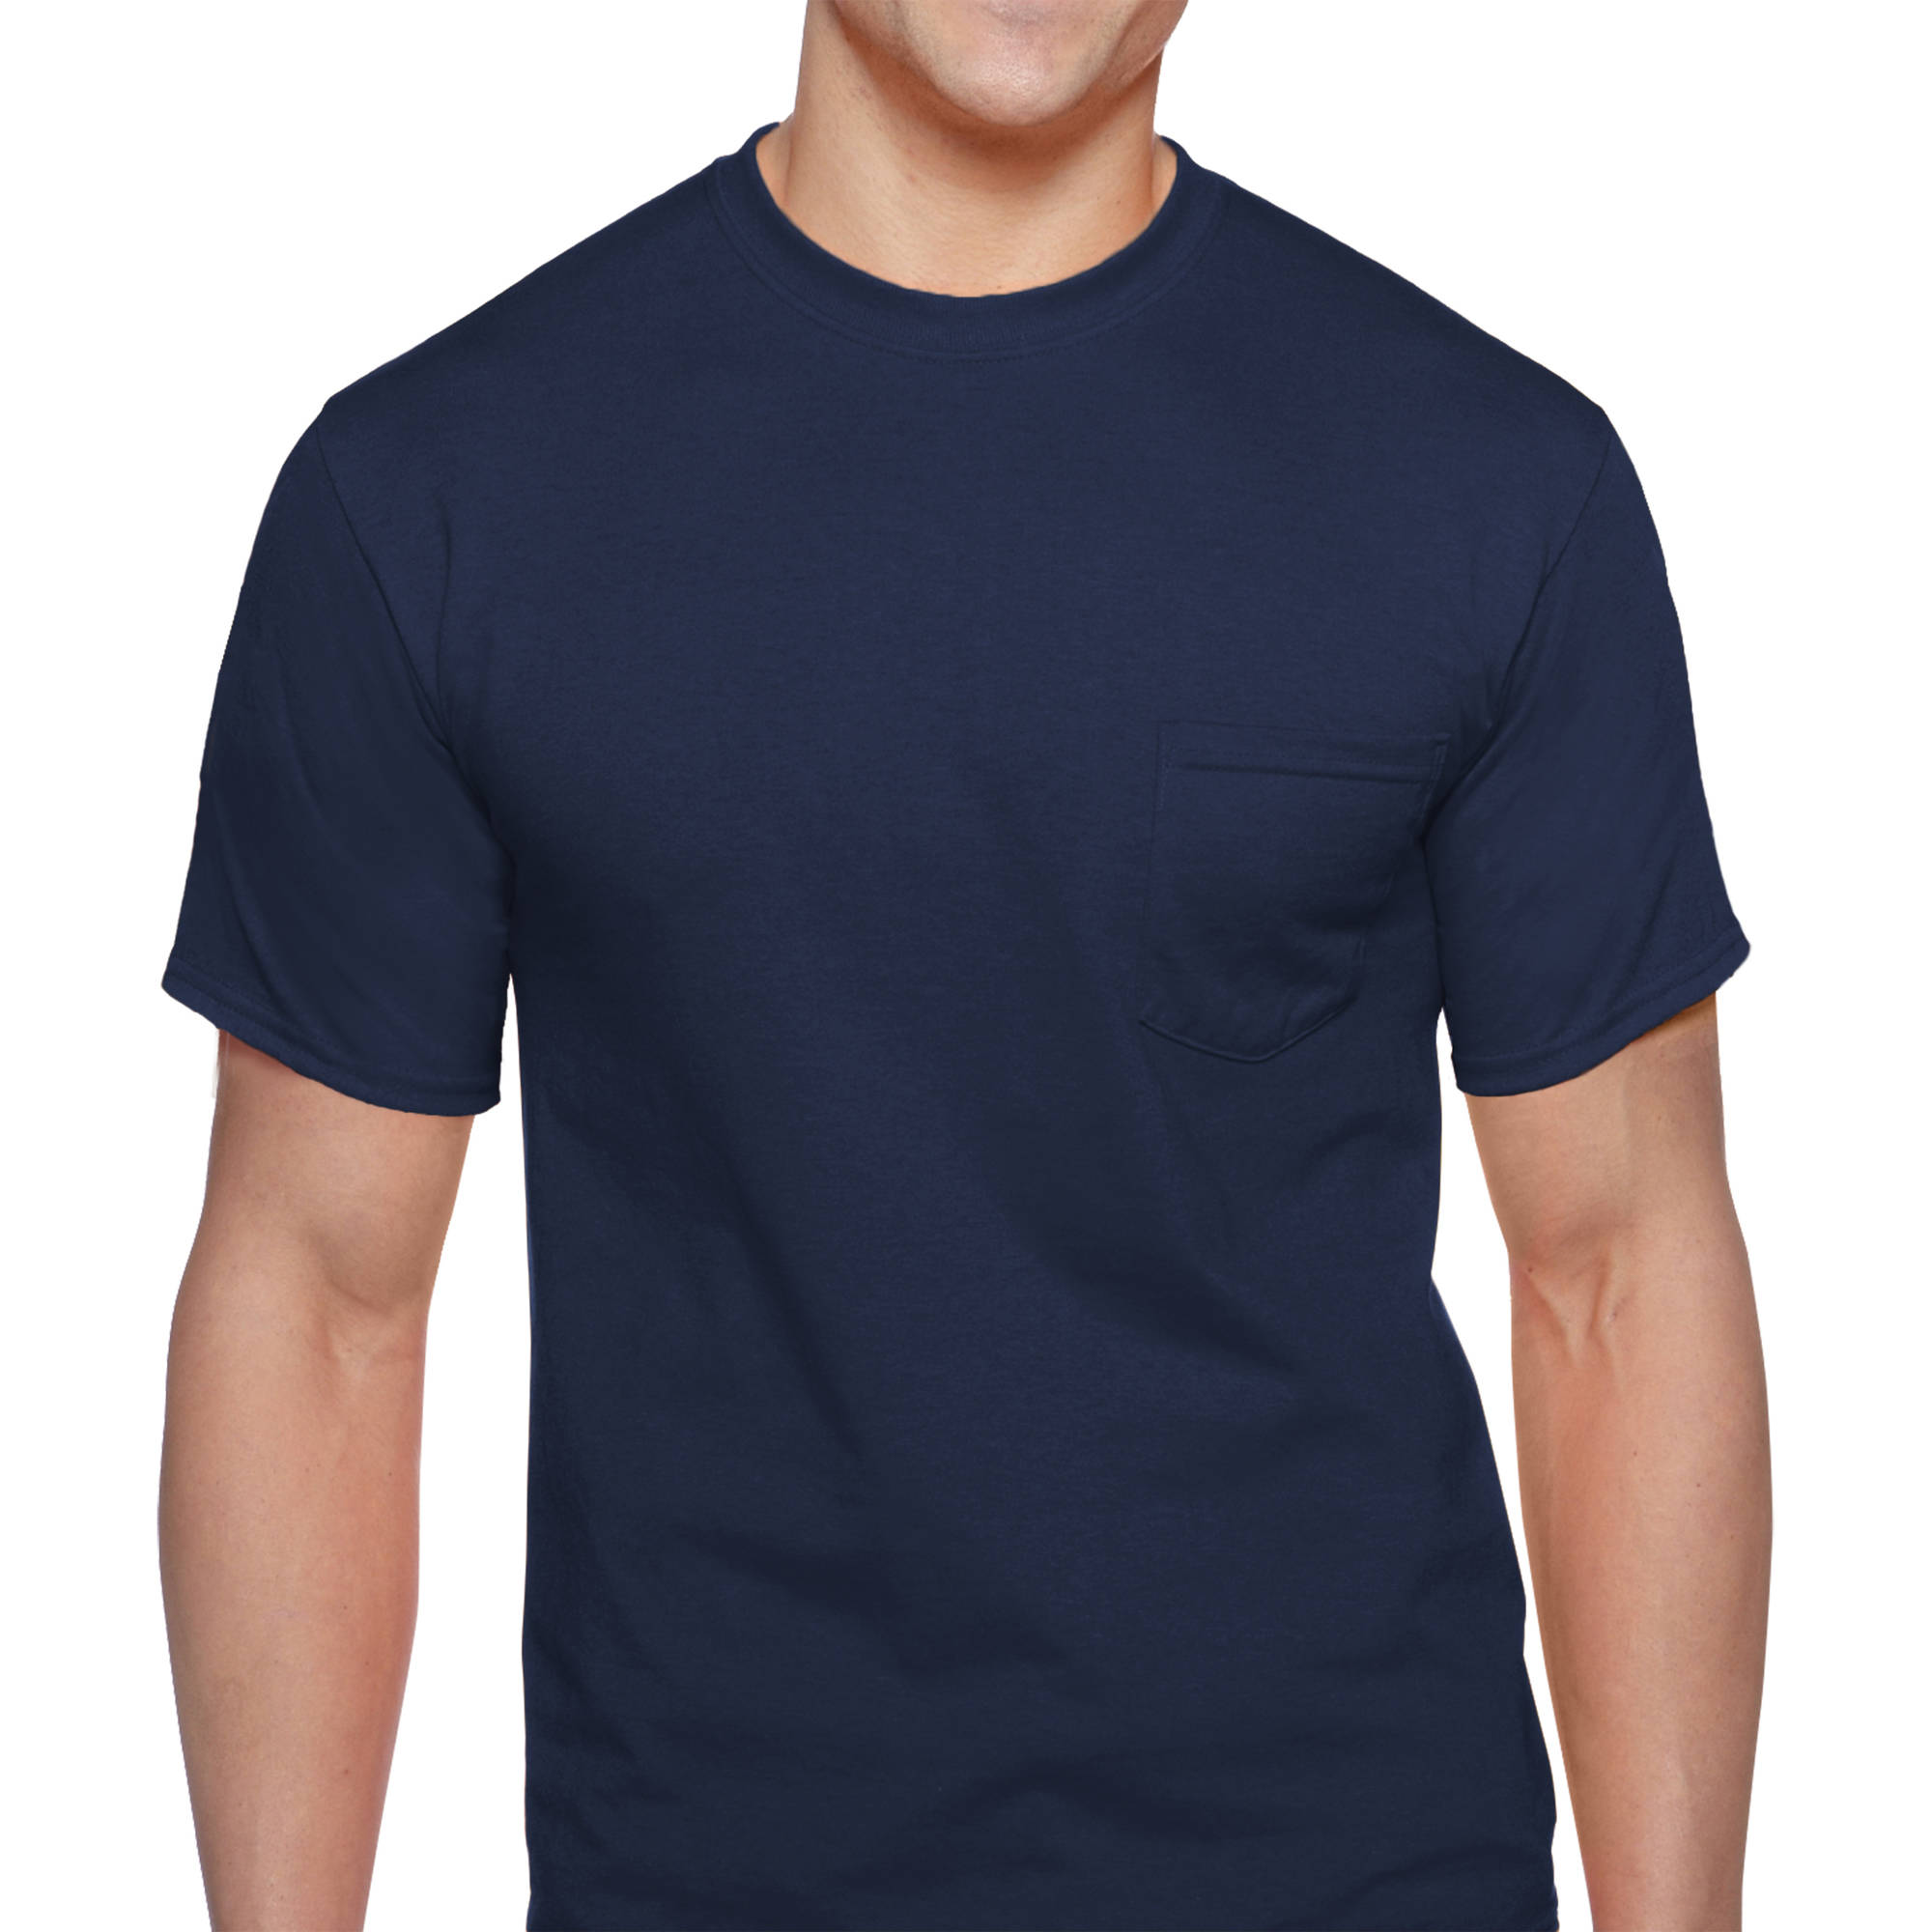 Big Men's DryBlend Workwear Pocket Tee, 2-Pack